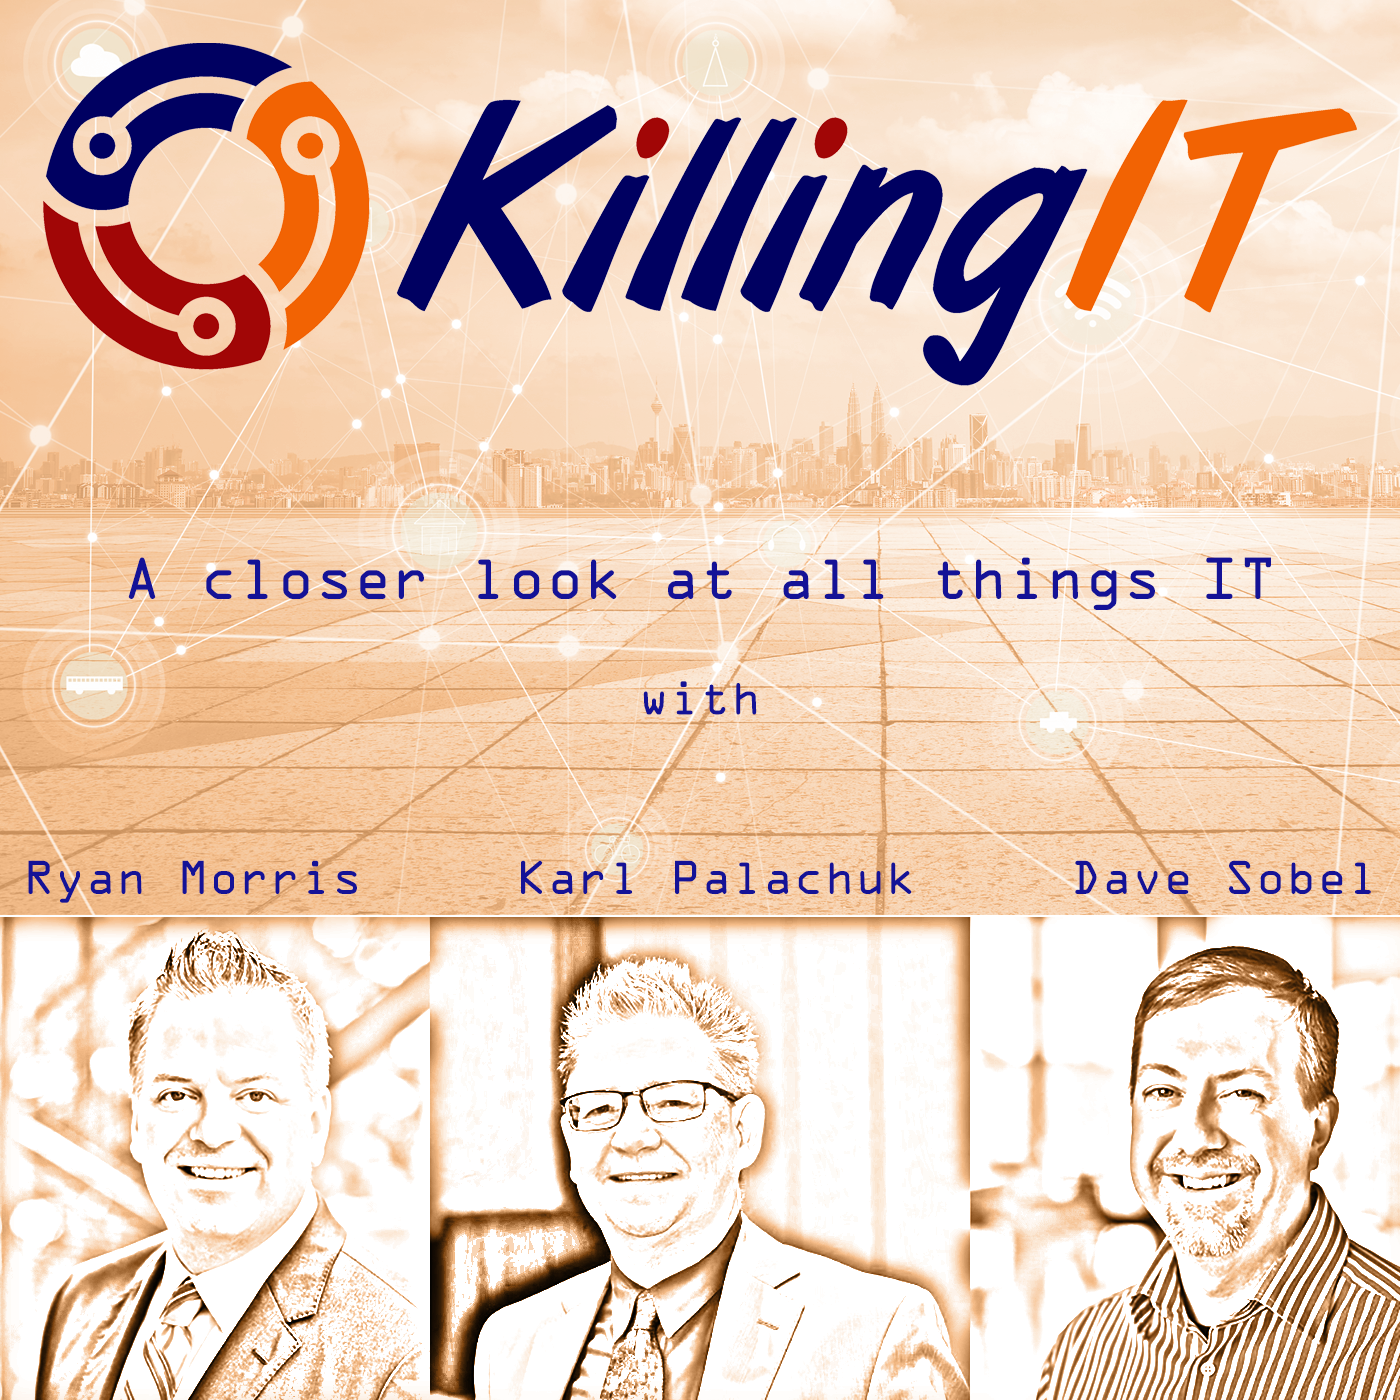 Episode 135 - Killing IT Live - Contract for the Web, Losing AI, and Smart City Overload show art